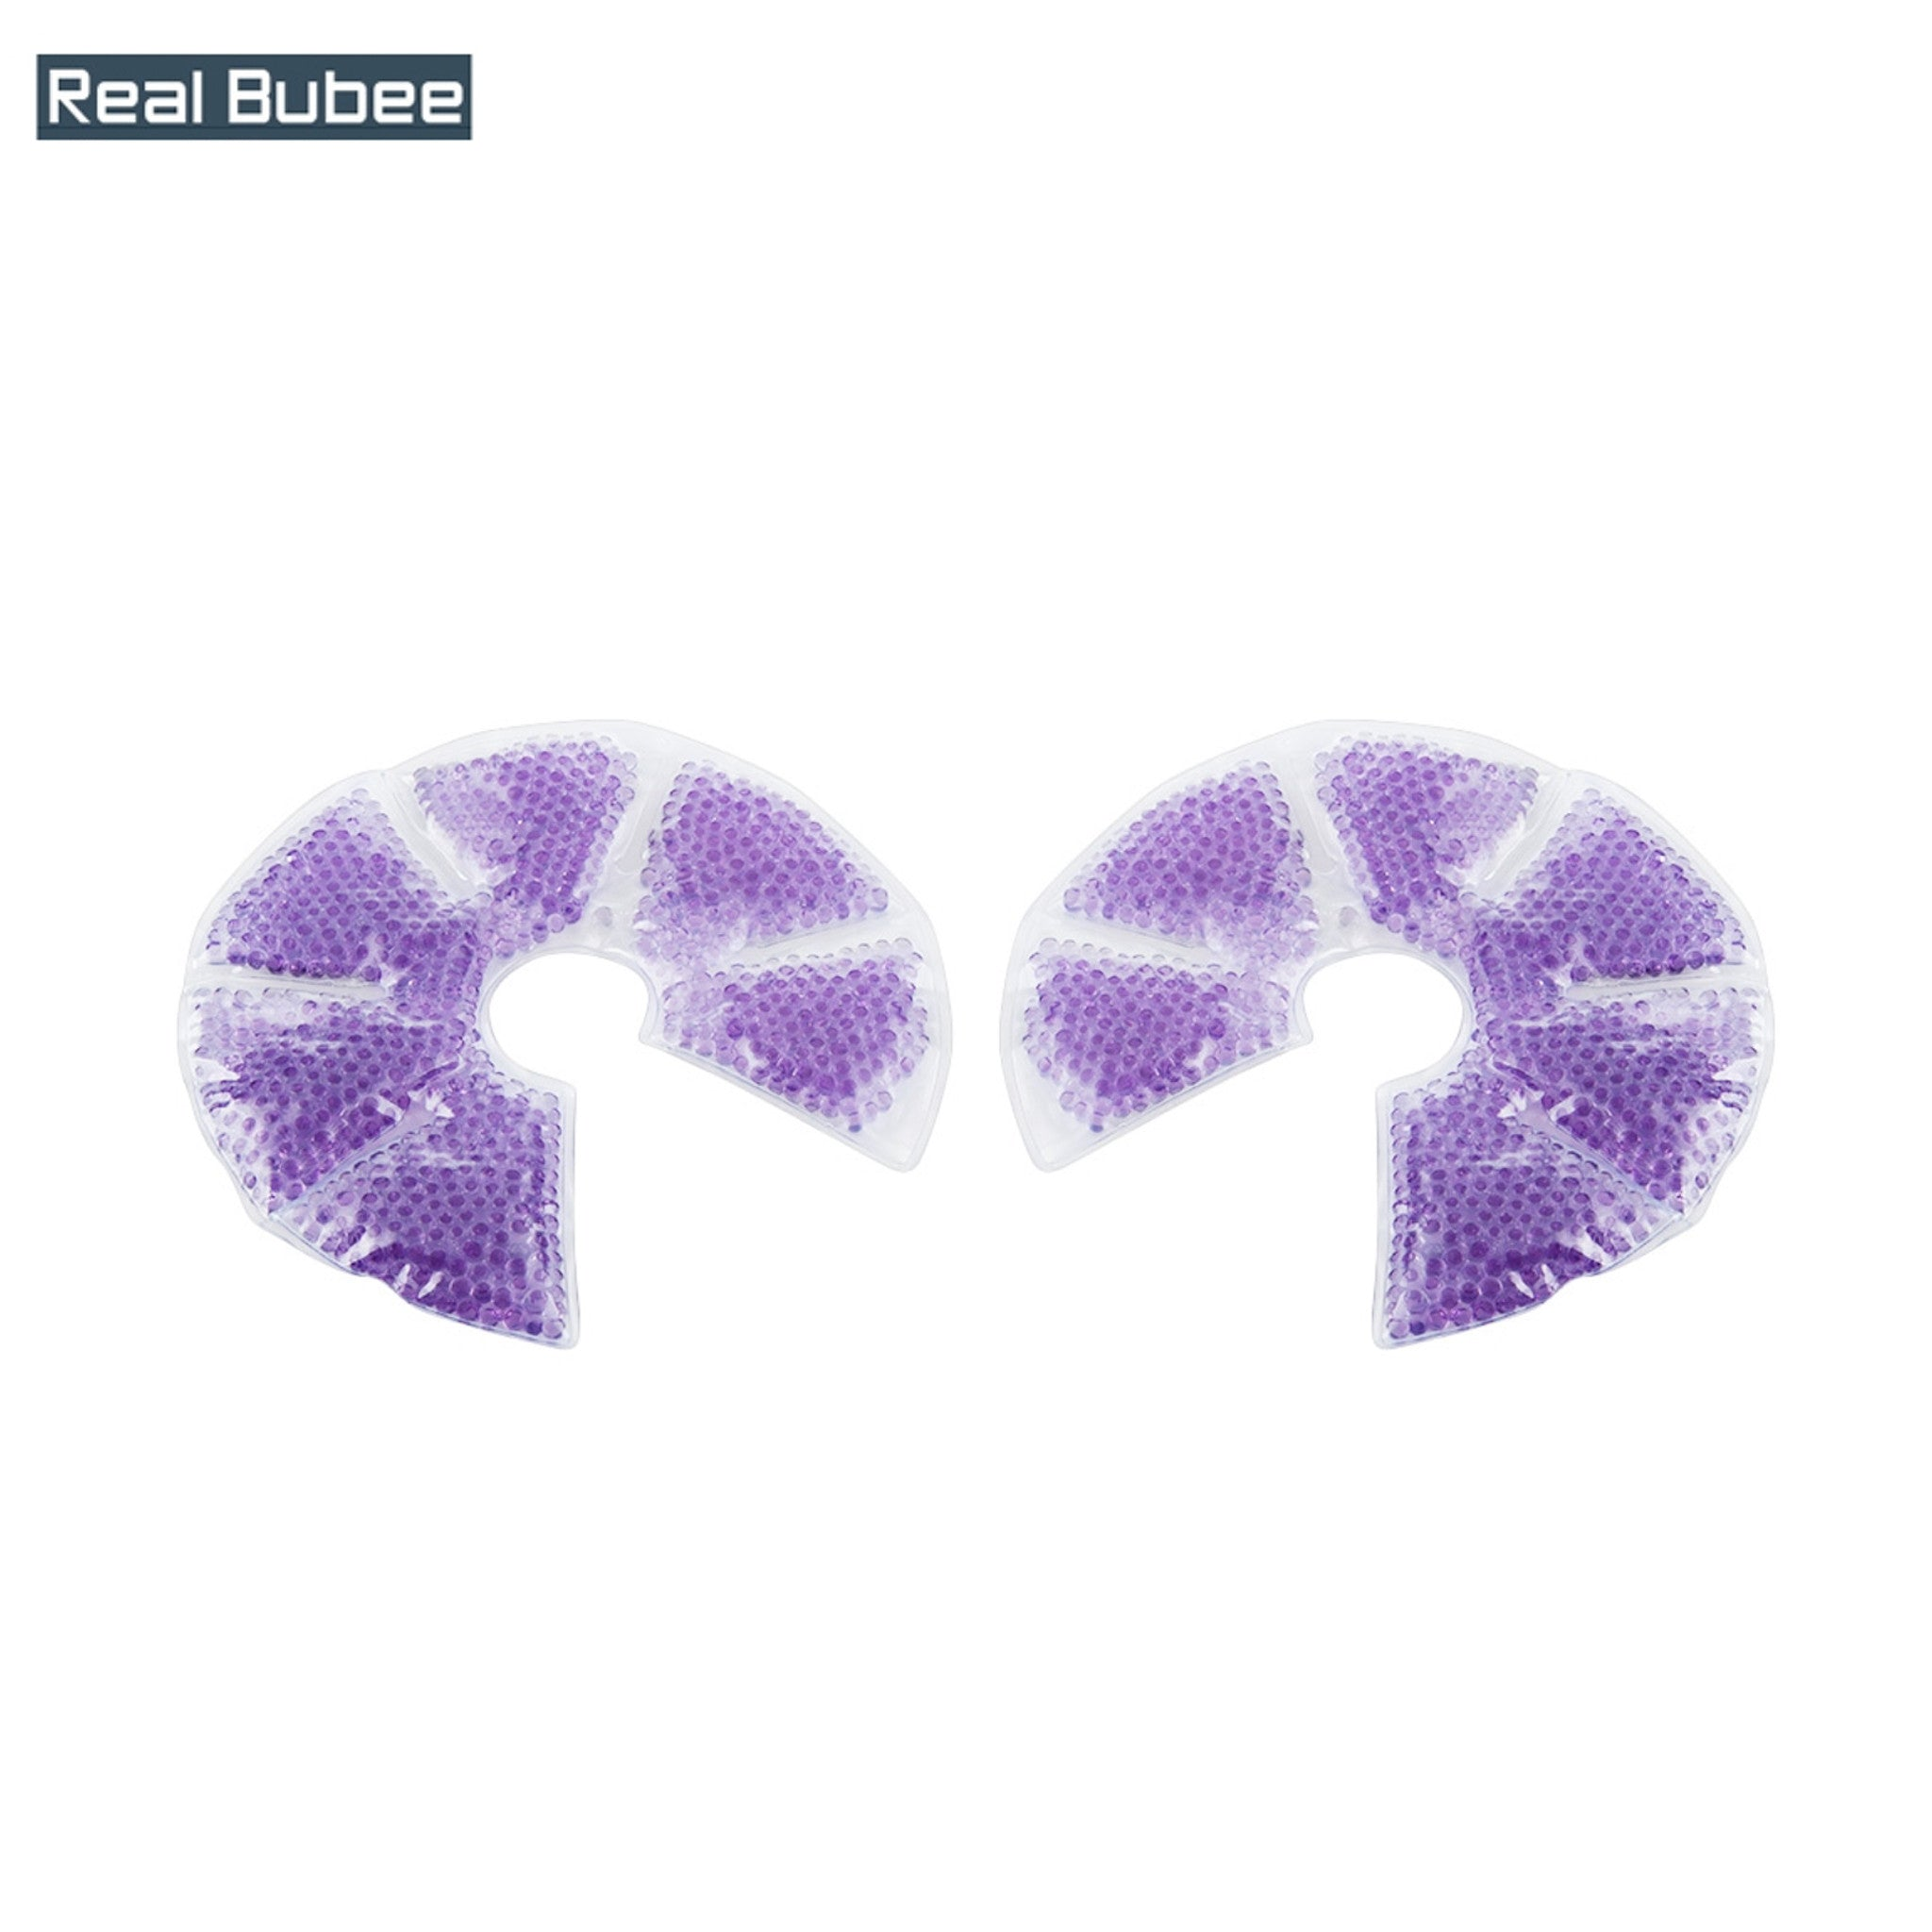 Real Bubee Breast Therapy Pad